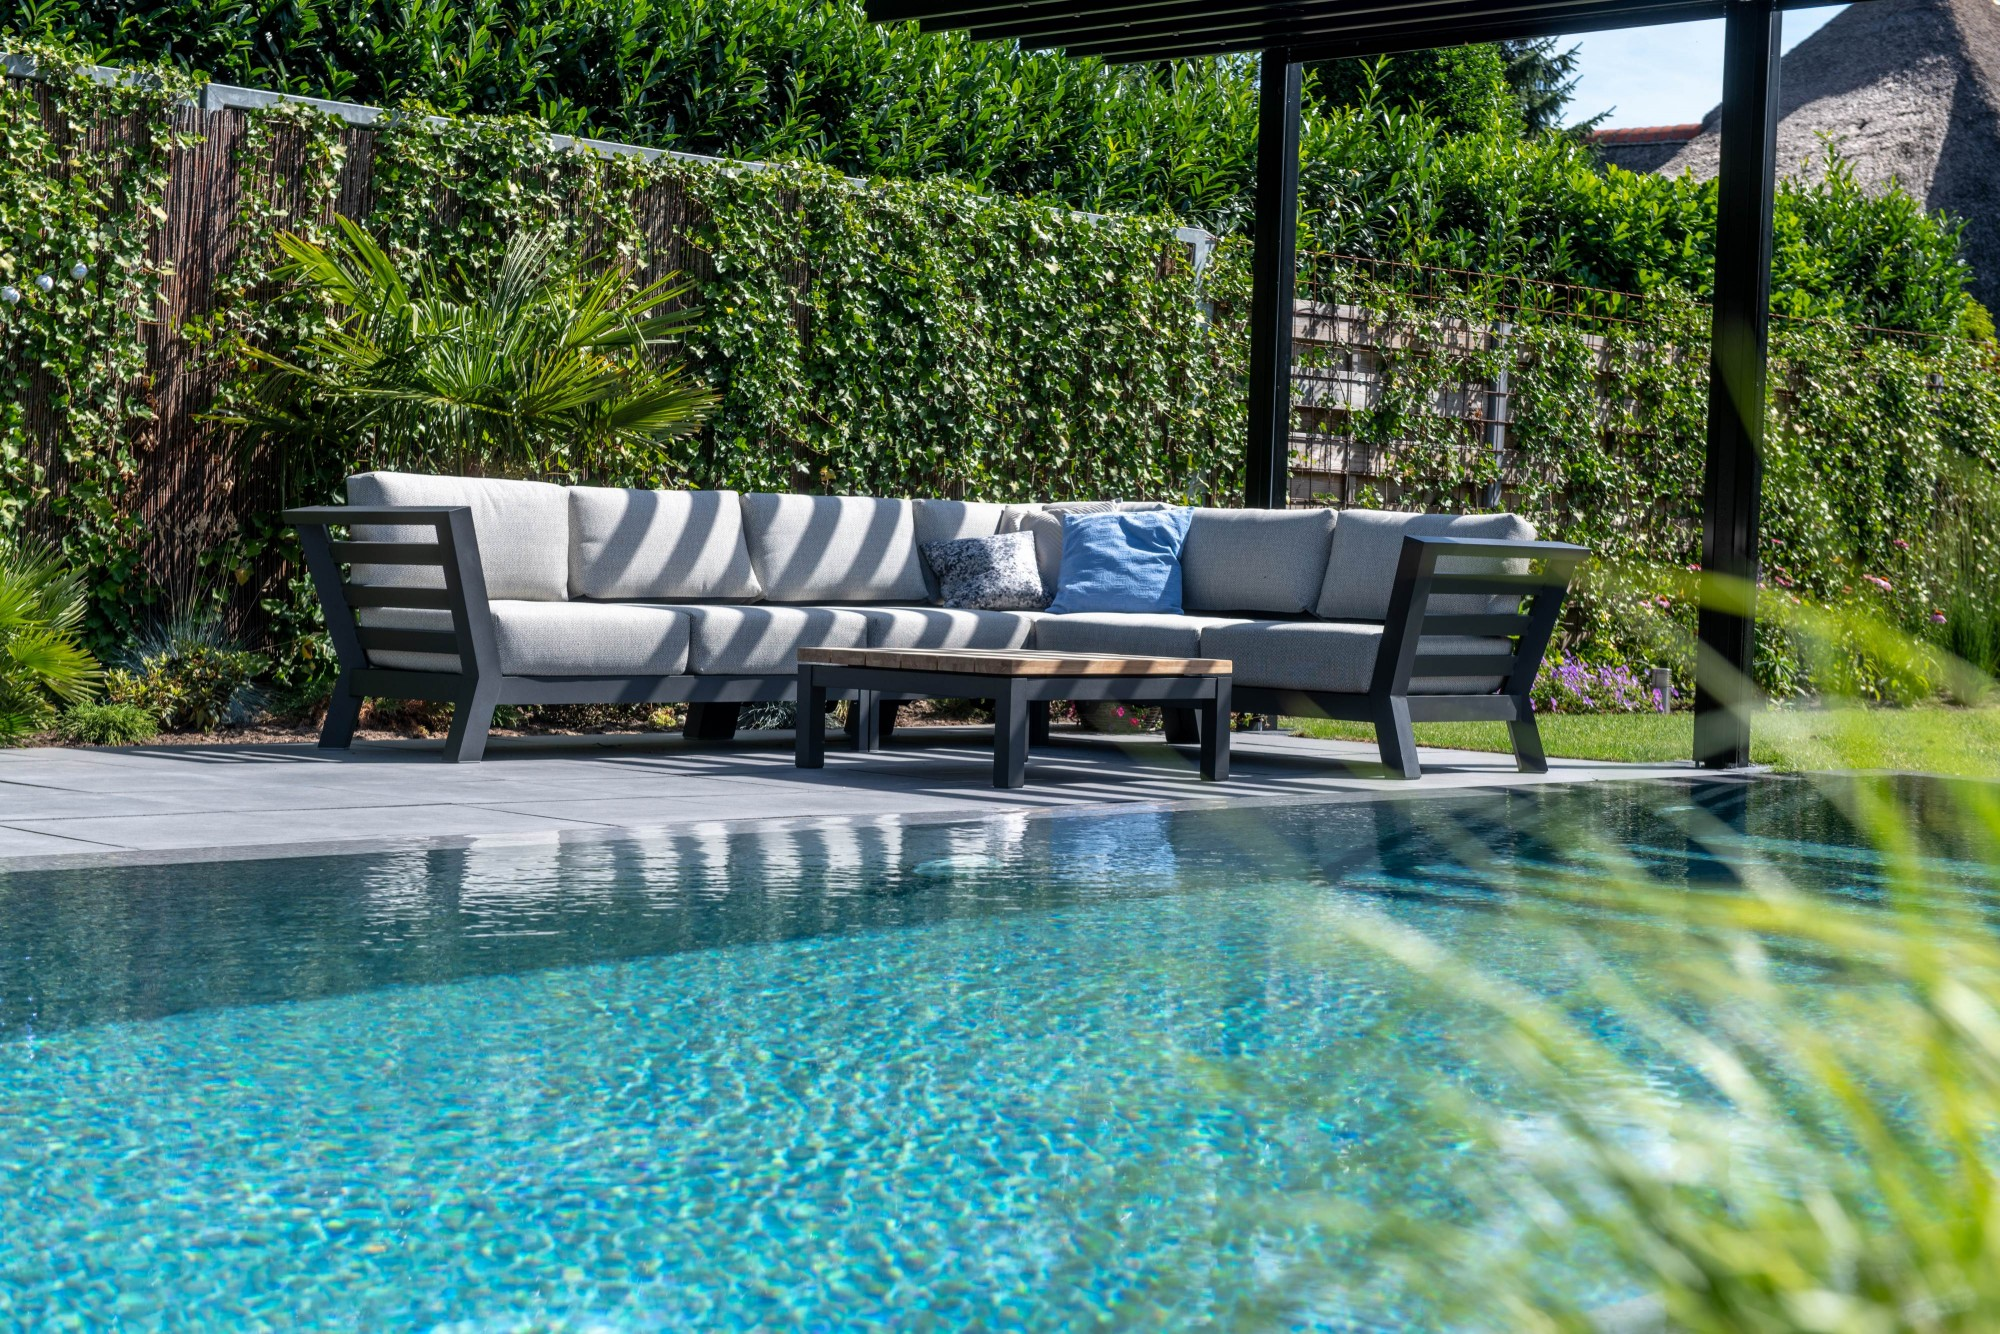 4 Seasons Outdoor Meteoro Loungeset